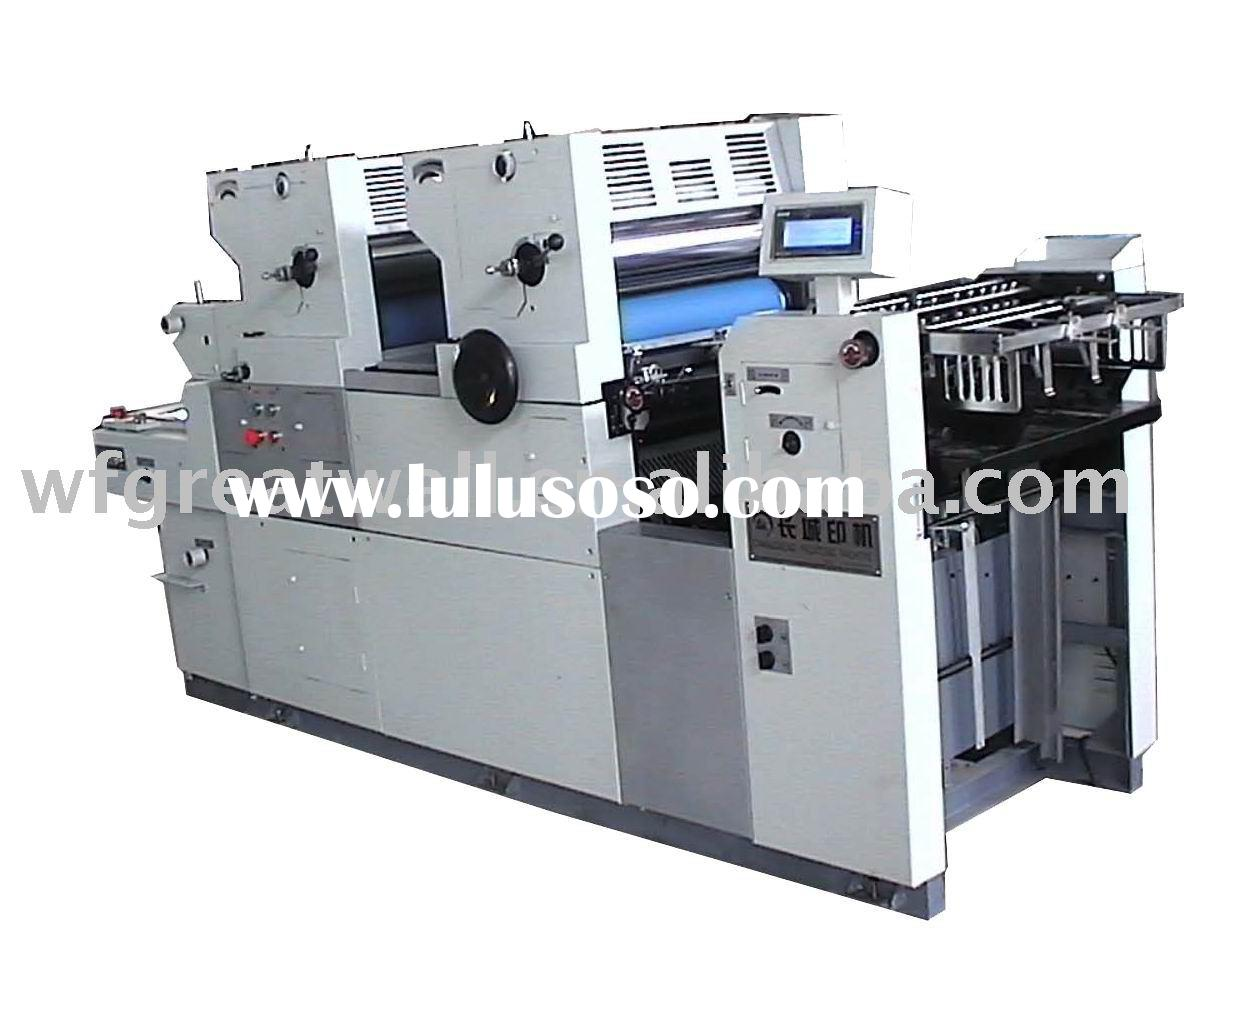 two color offset press/printing machine (supply technical support)